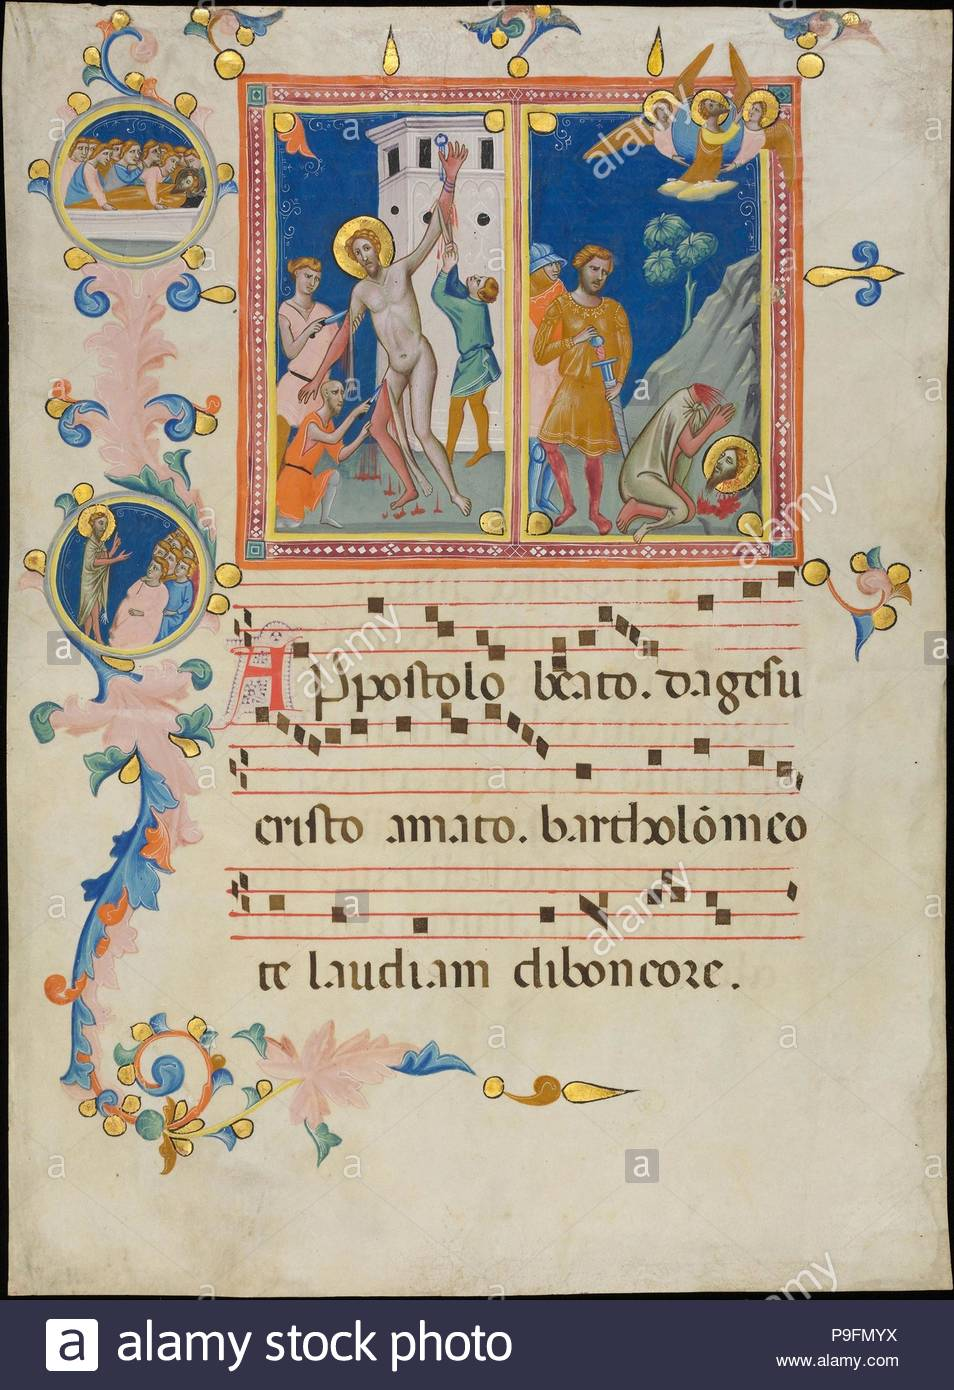 Manuscript Leaf with the Martyrdom of Saint Bartholomew, from a Laudario, ca. 1340, Made in Florence, Italy, Italian, Tempera, gold, and ink on parchment, Overall: 18 1/2 x 13 3/4 in. (47 x 35 cm), Manuscripts and Illuminations, Pacino di Bonaguida (Italian, active Florence 1302–ca. 1340), On this page, the final moments of the martyrdom of the apostle Bartholomew unfold with a dance-like grace that lends a sacred air to horrific events. At the left, three tormentors flay his legs and arms as Bartholomew stands chained to a city gate. - Stock Image